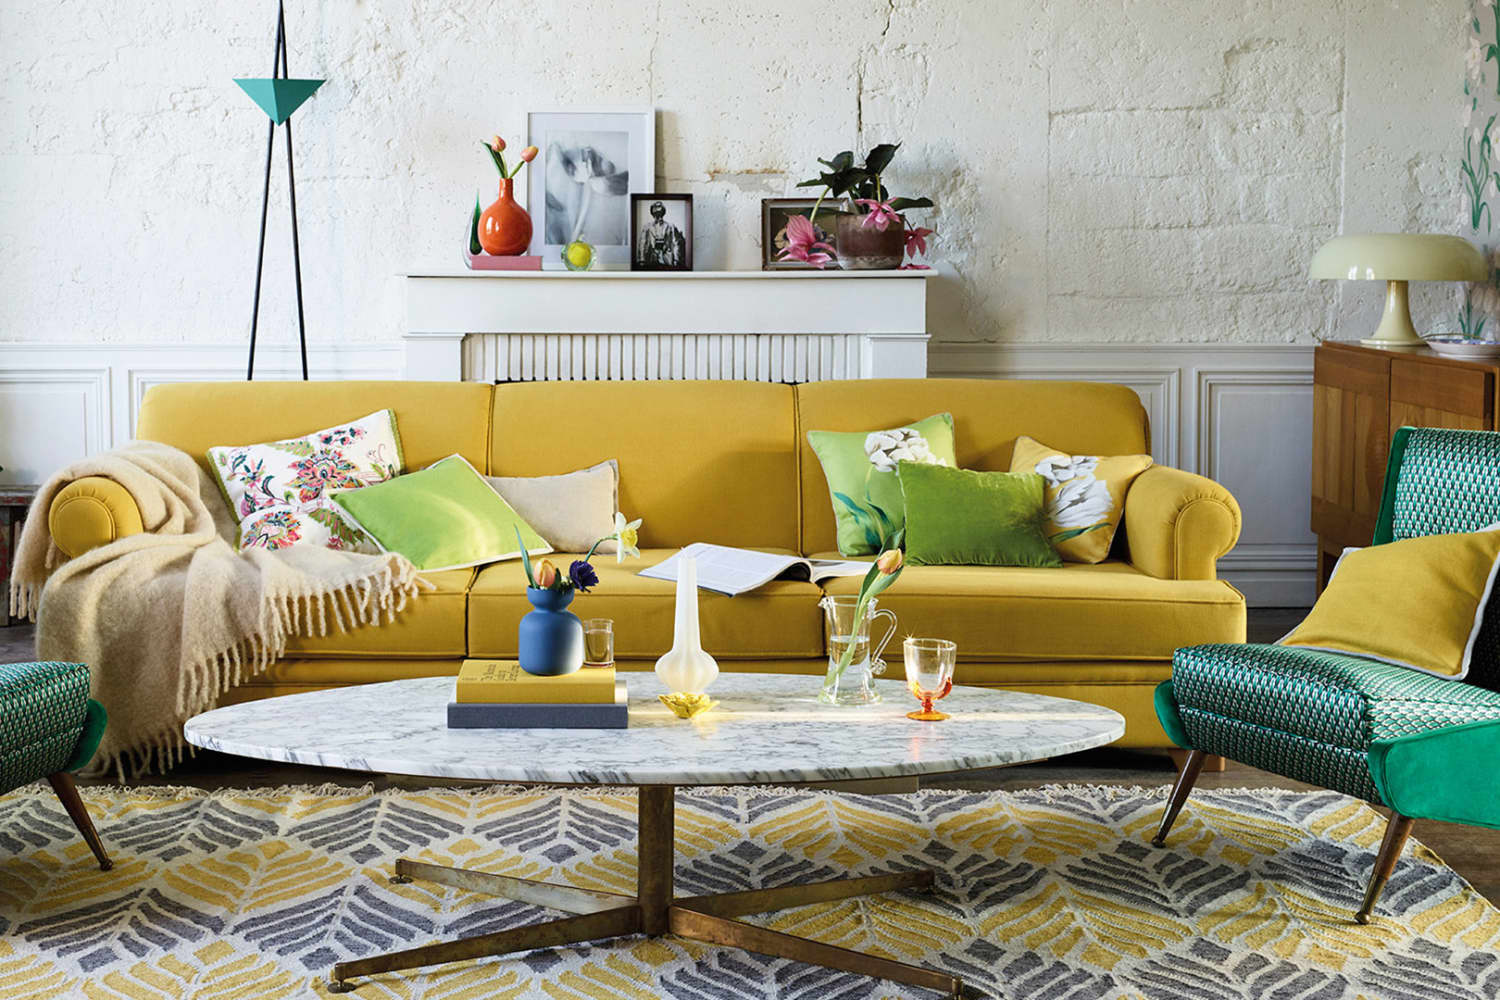 10 of Our Favorite Home Decor Finds From Zara Home ...